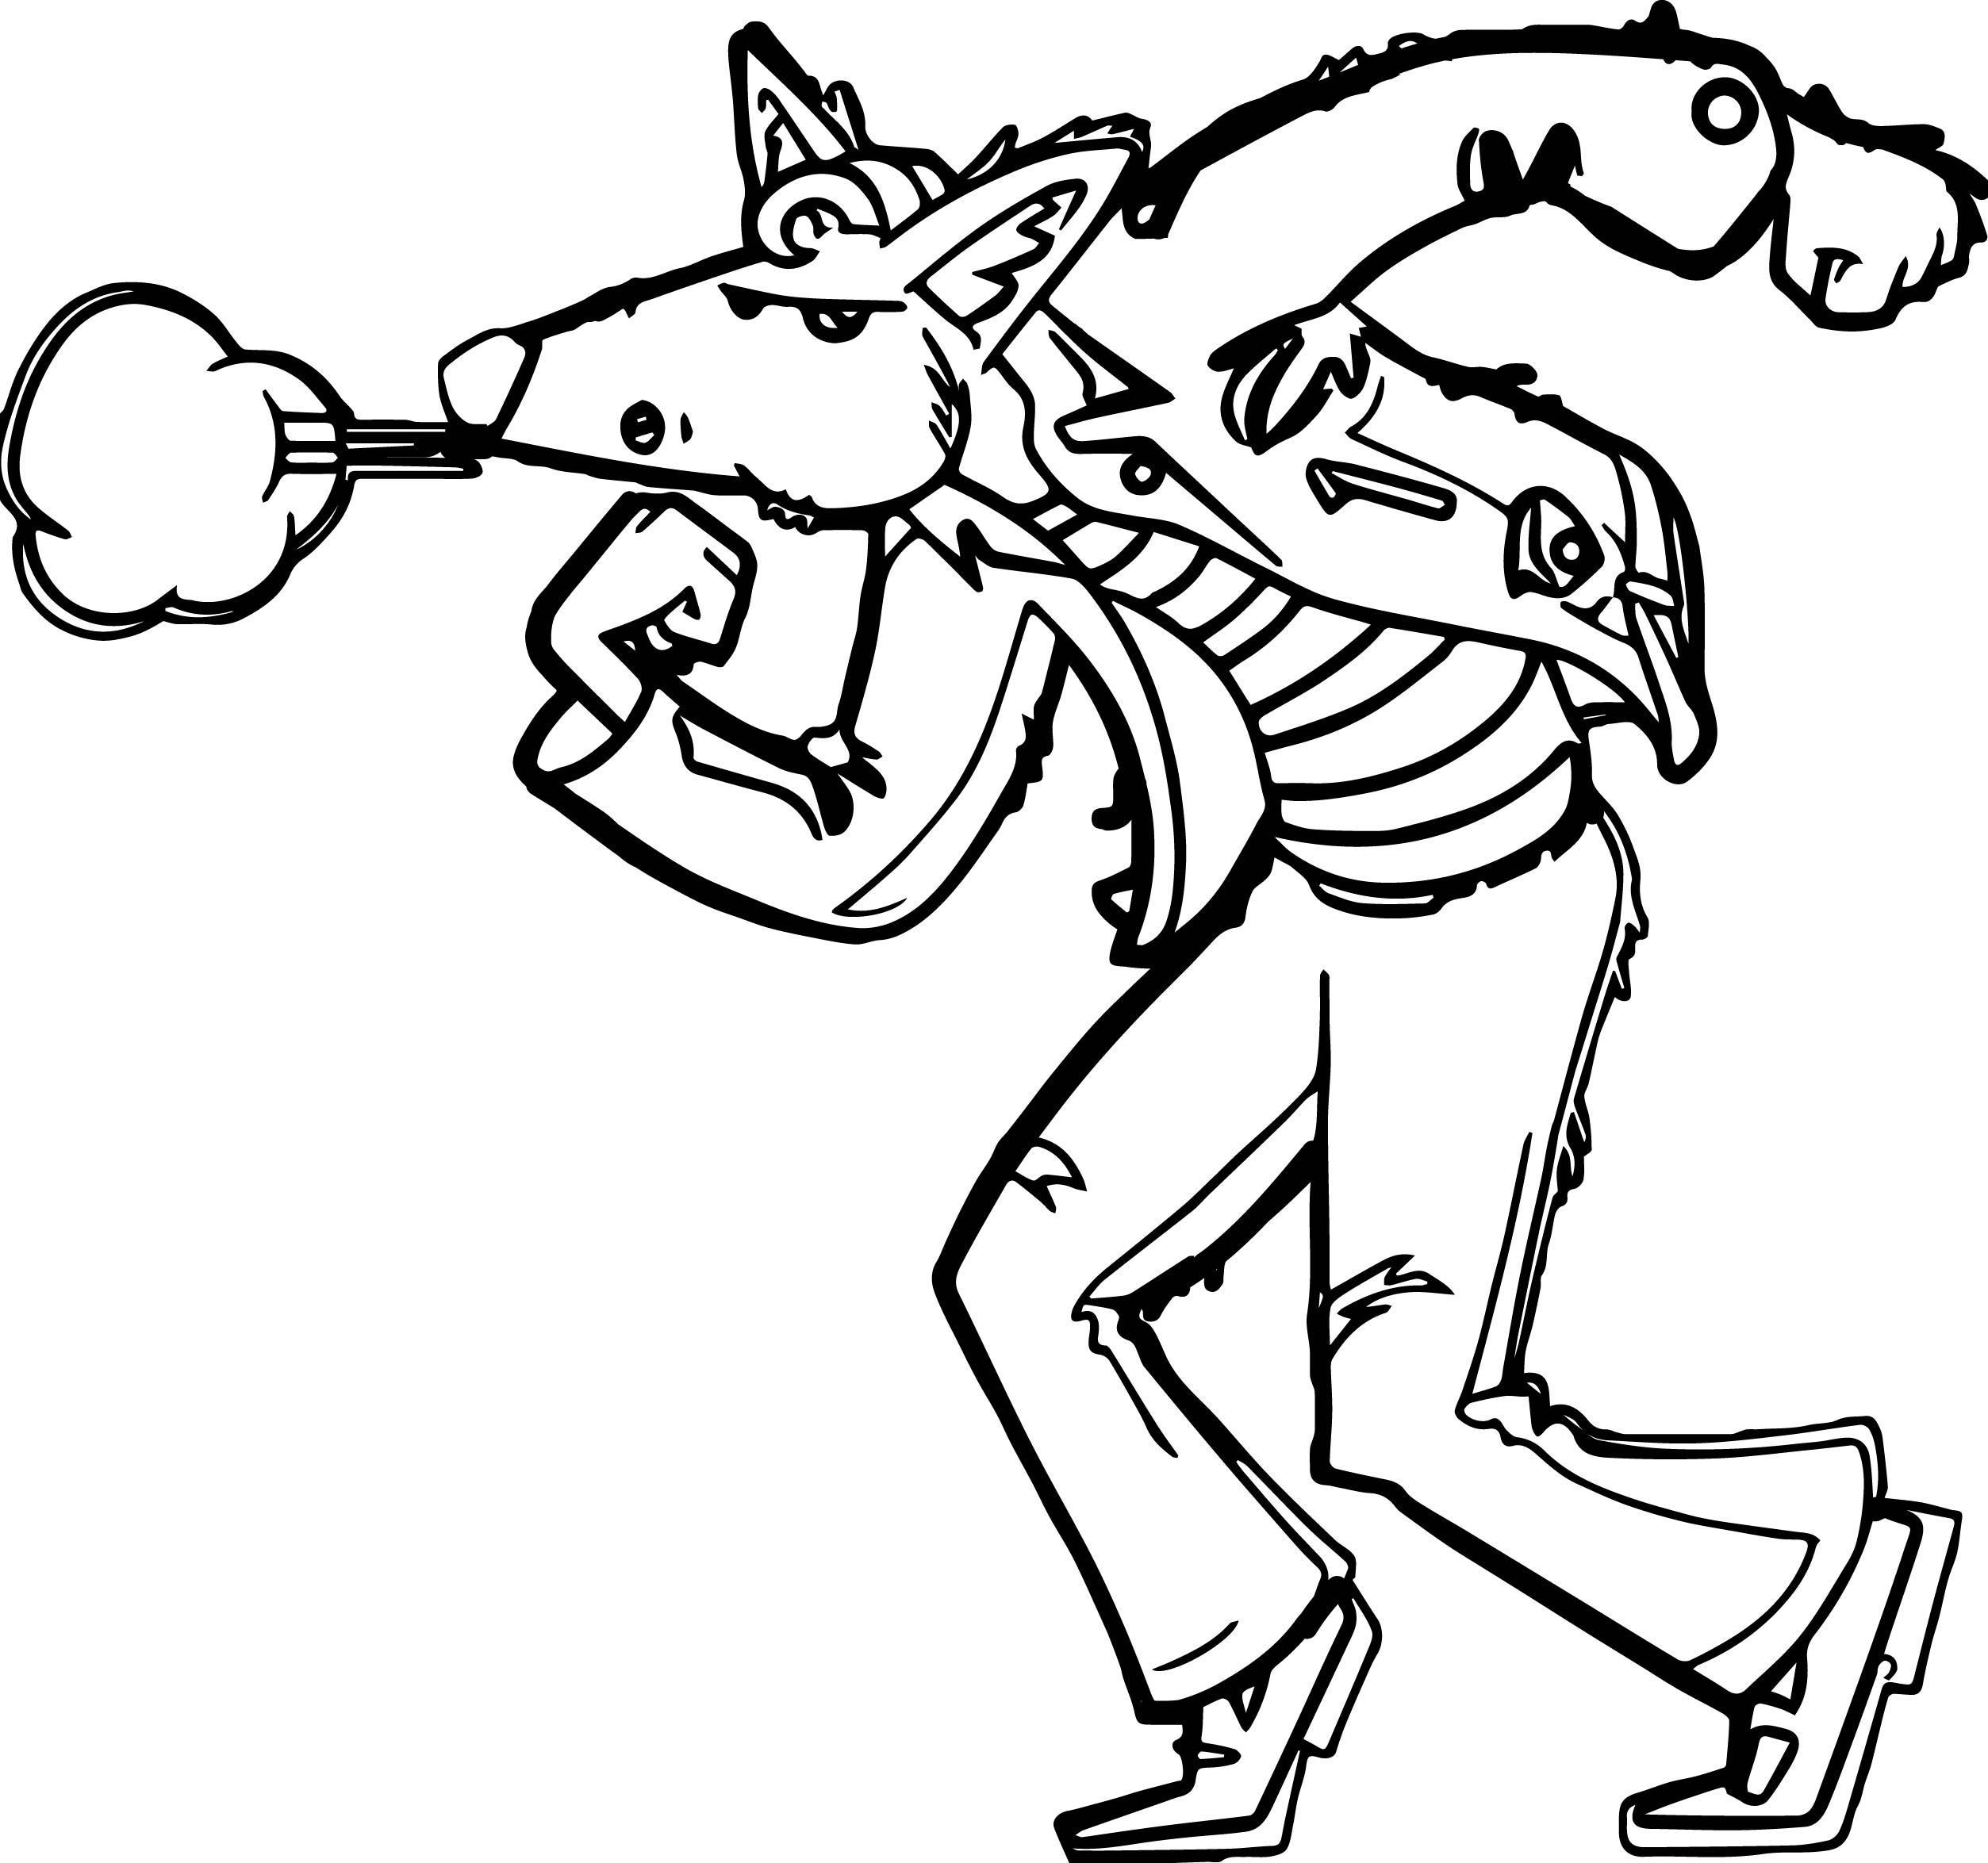 2506x2349 Big Bad Wolf Coloring Page Wecoloringpage